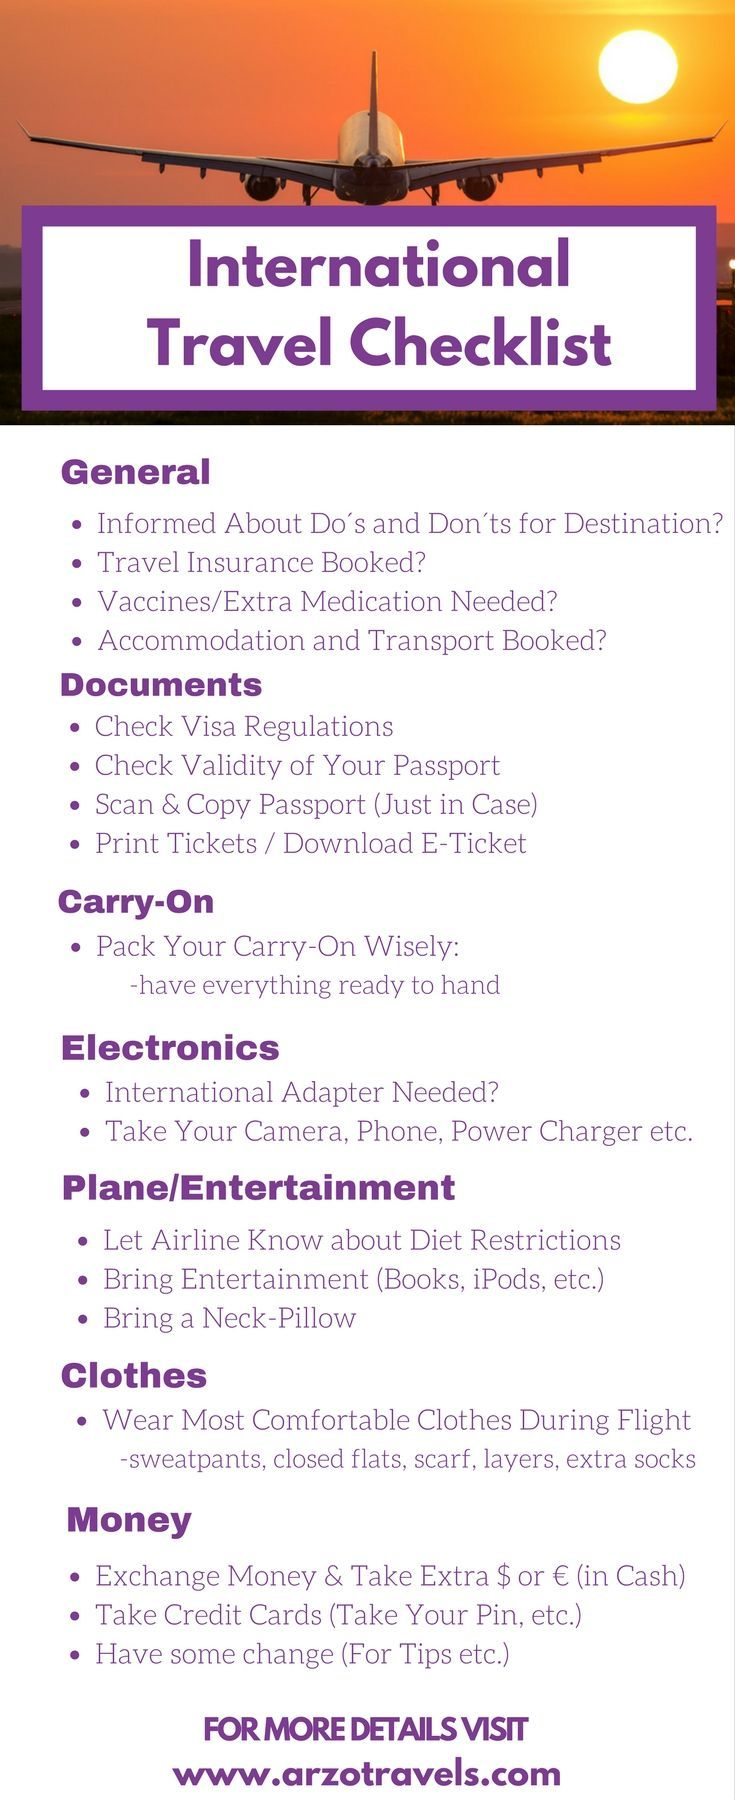 Transfer handle security bed rail mobile transfer systems mts - Checklist Things To Do Before An International Trip 21 Things You Should Do And